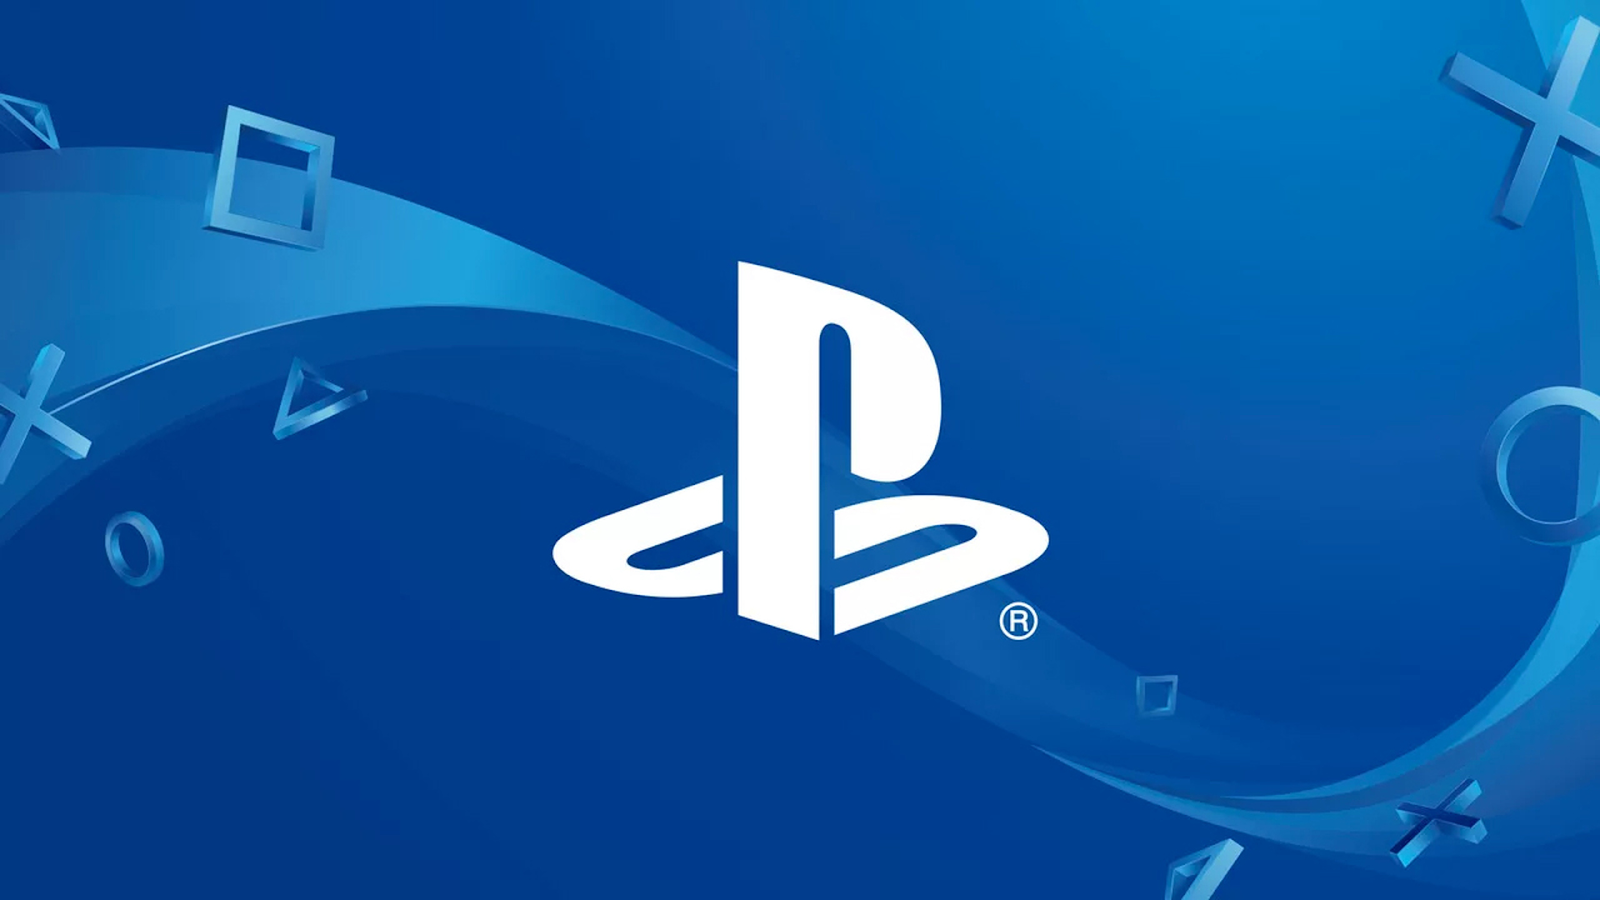 sony ps5 announcement